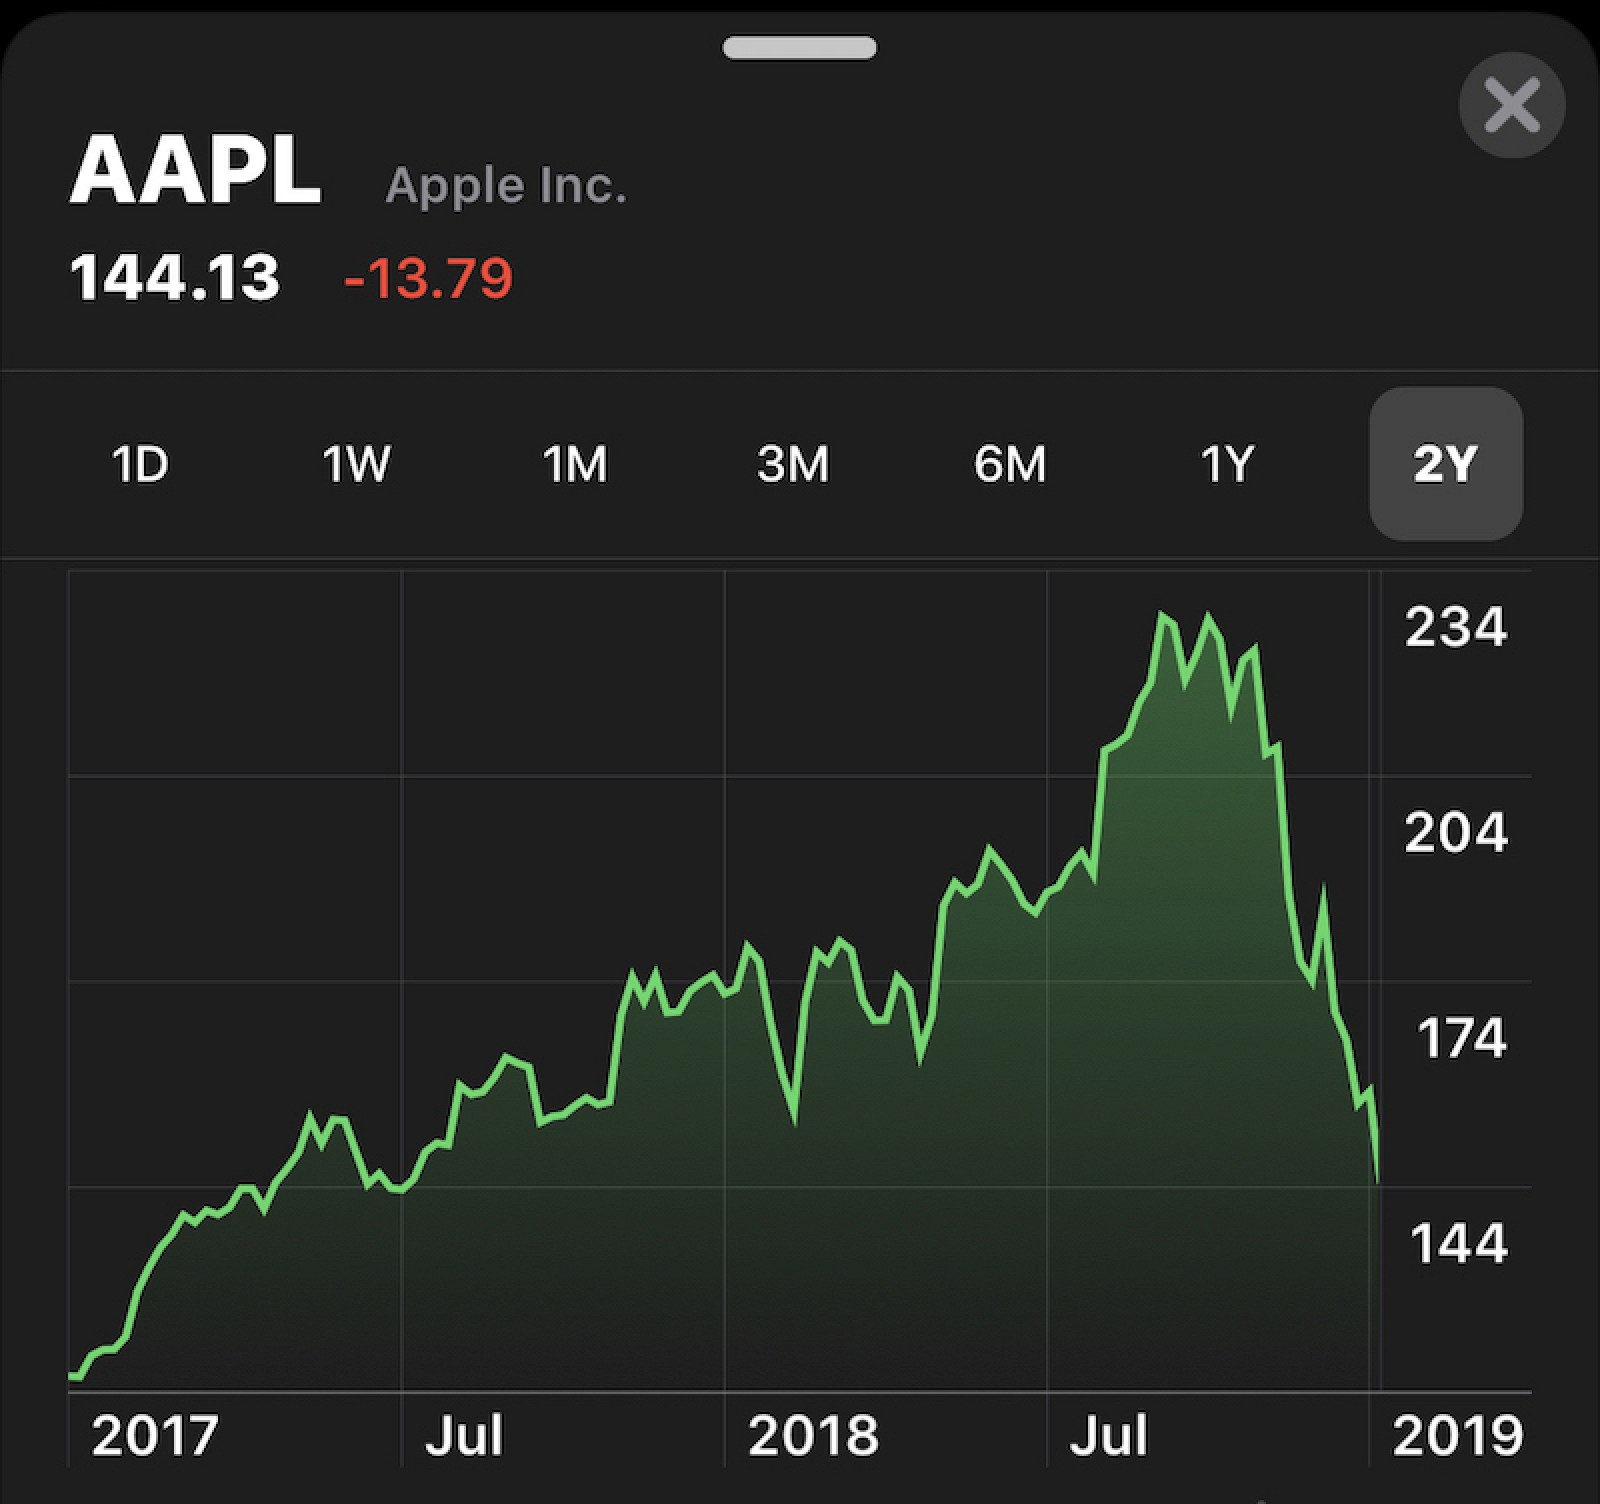 Aapl Apple Stock Price Drop 9 Percent After Guidance Fiscal Q1 2019 Img 2